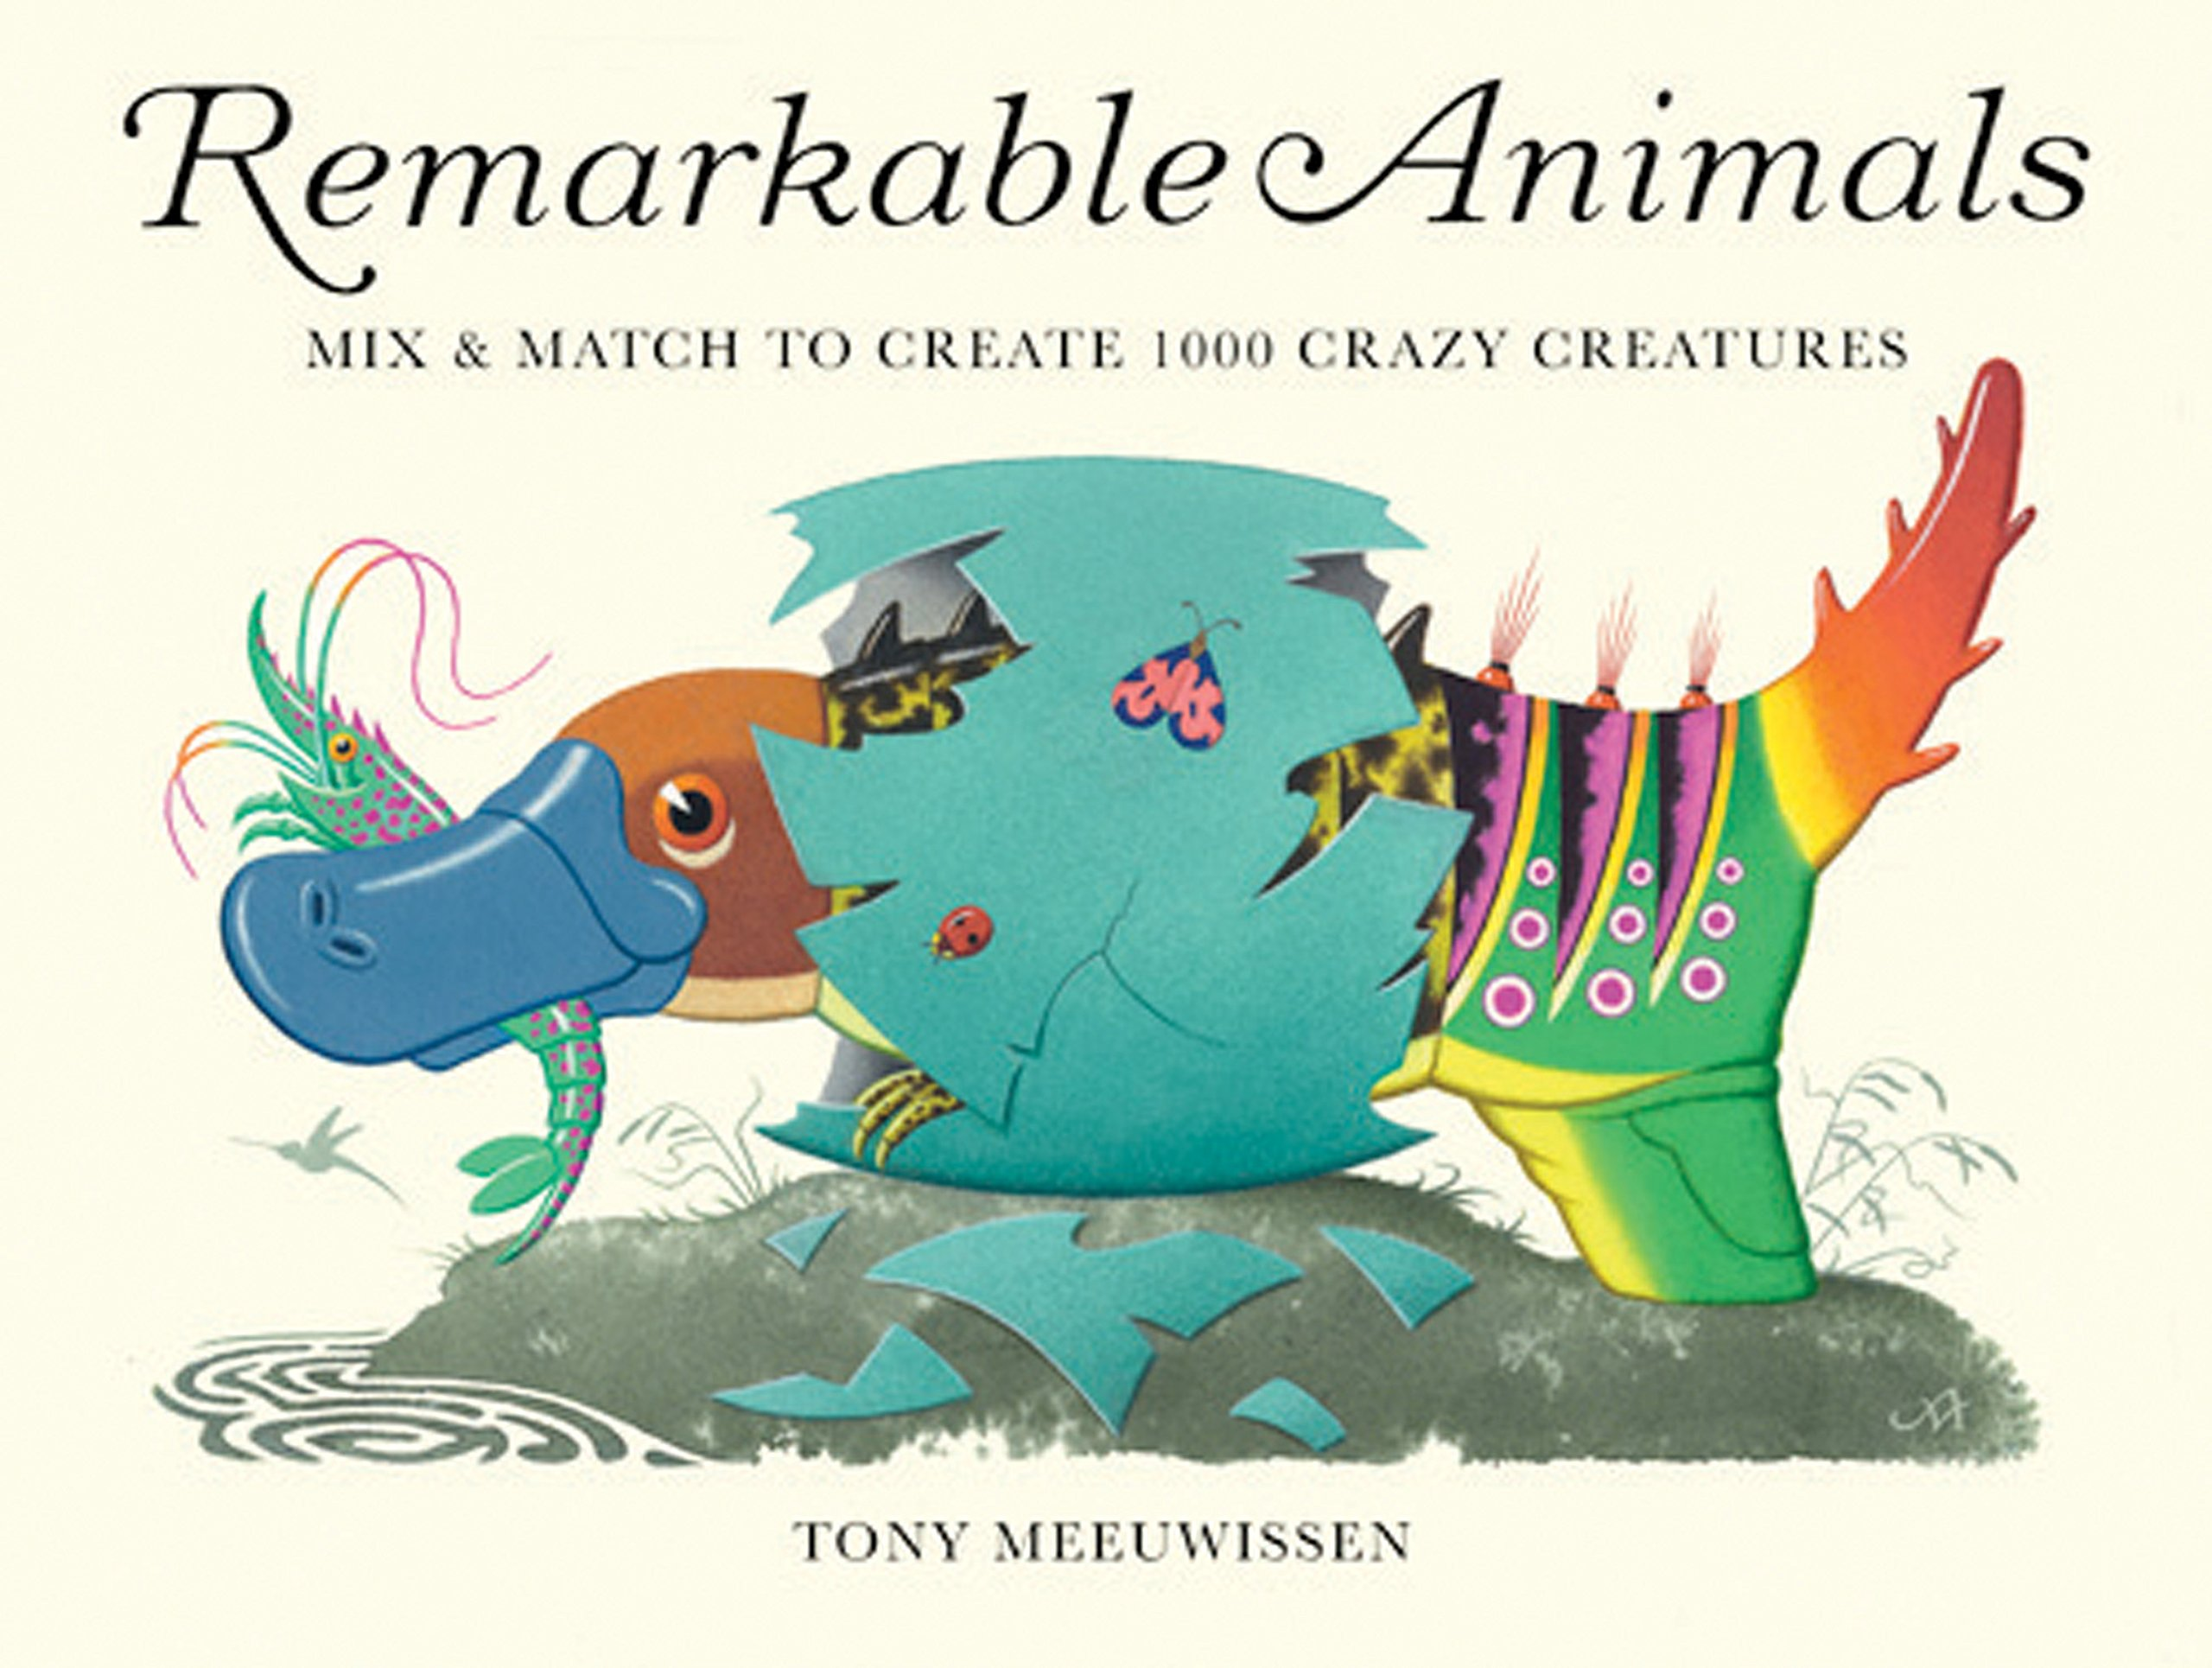 Download Remarkable Animals (mini edition): Mix & Match to Create 100 Crazy Creatures pdf